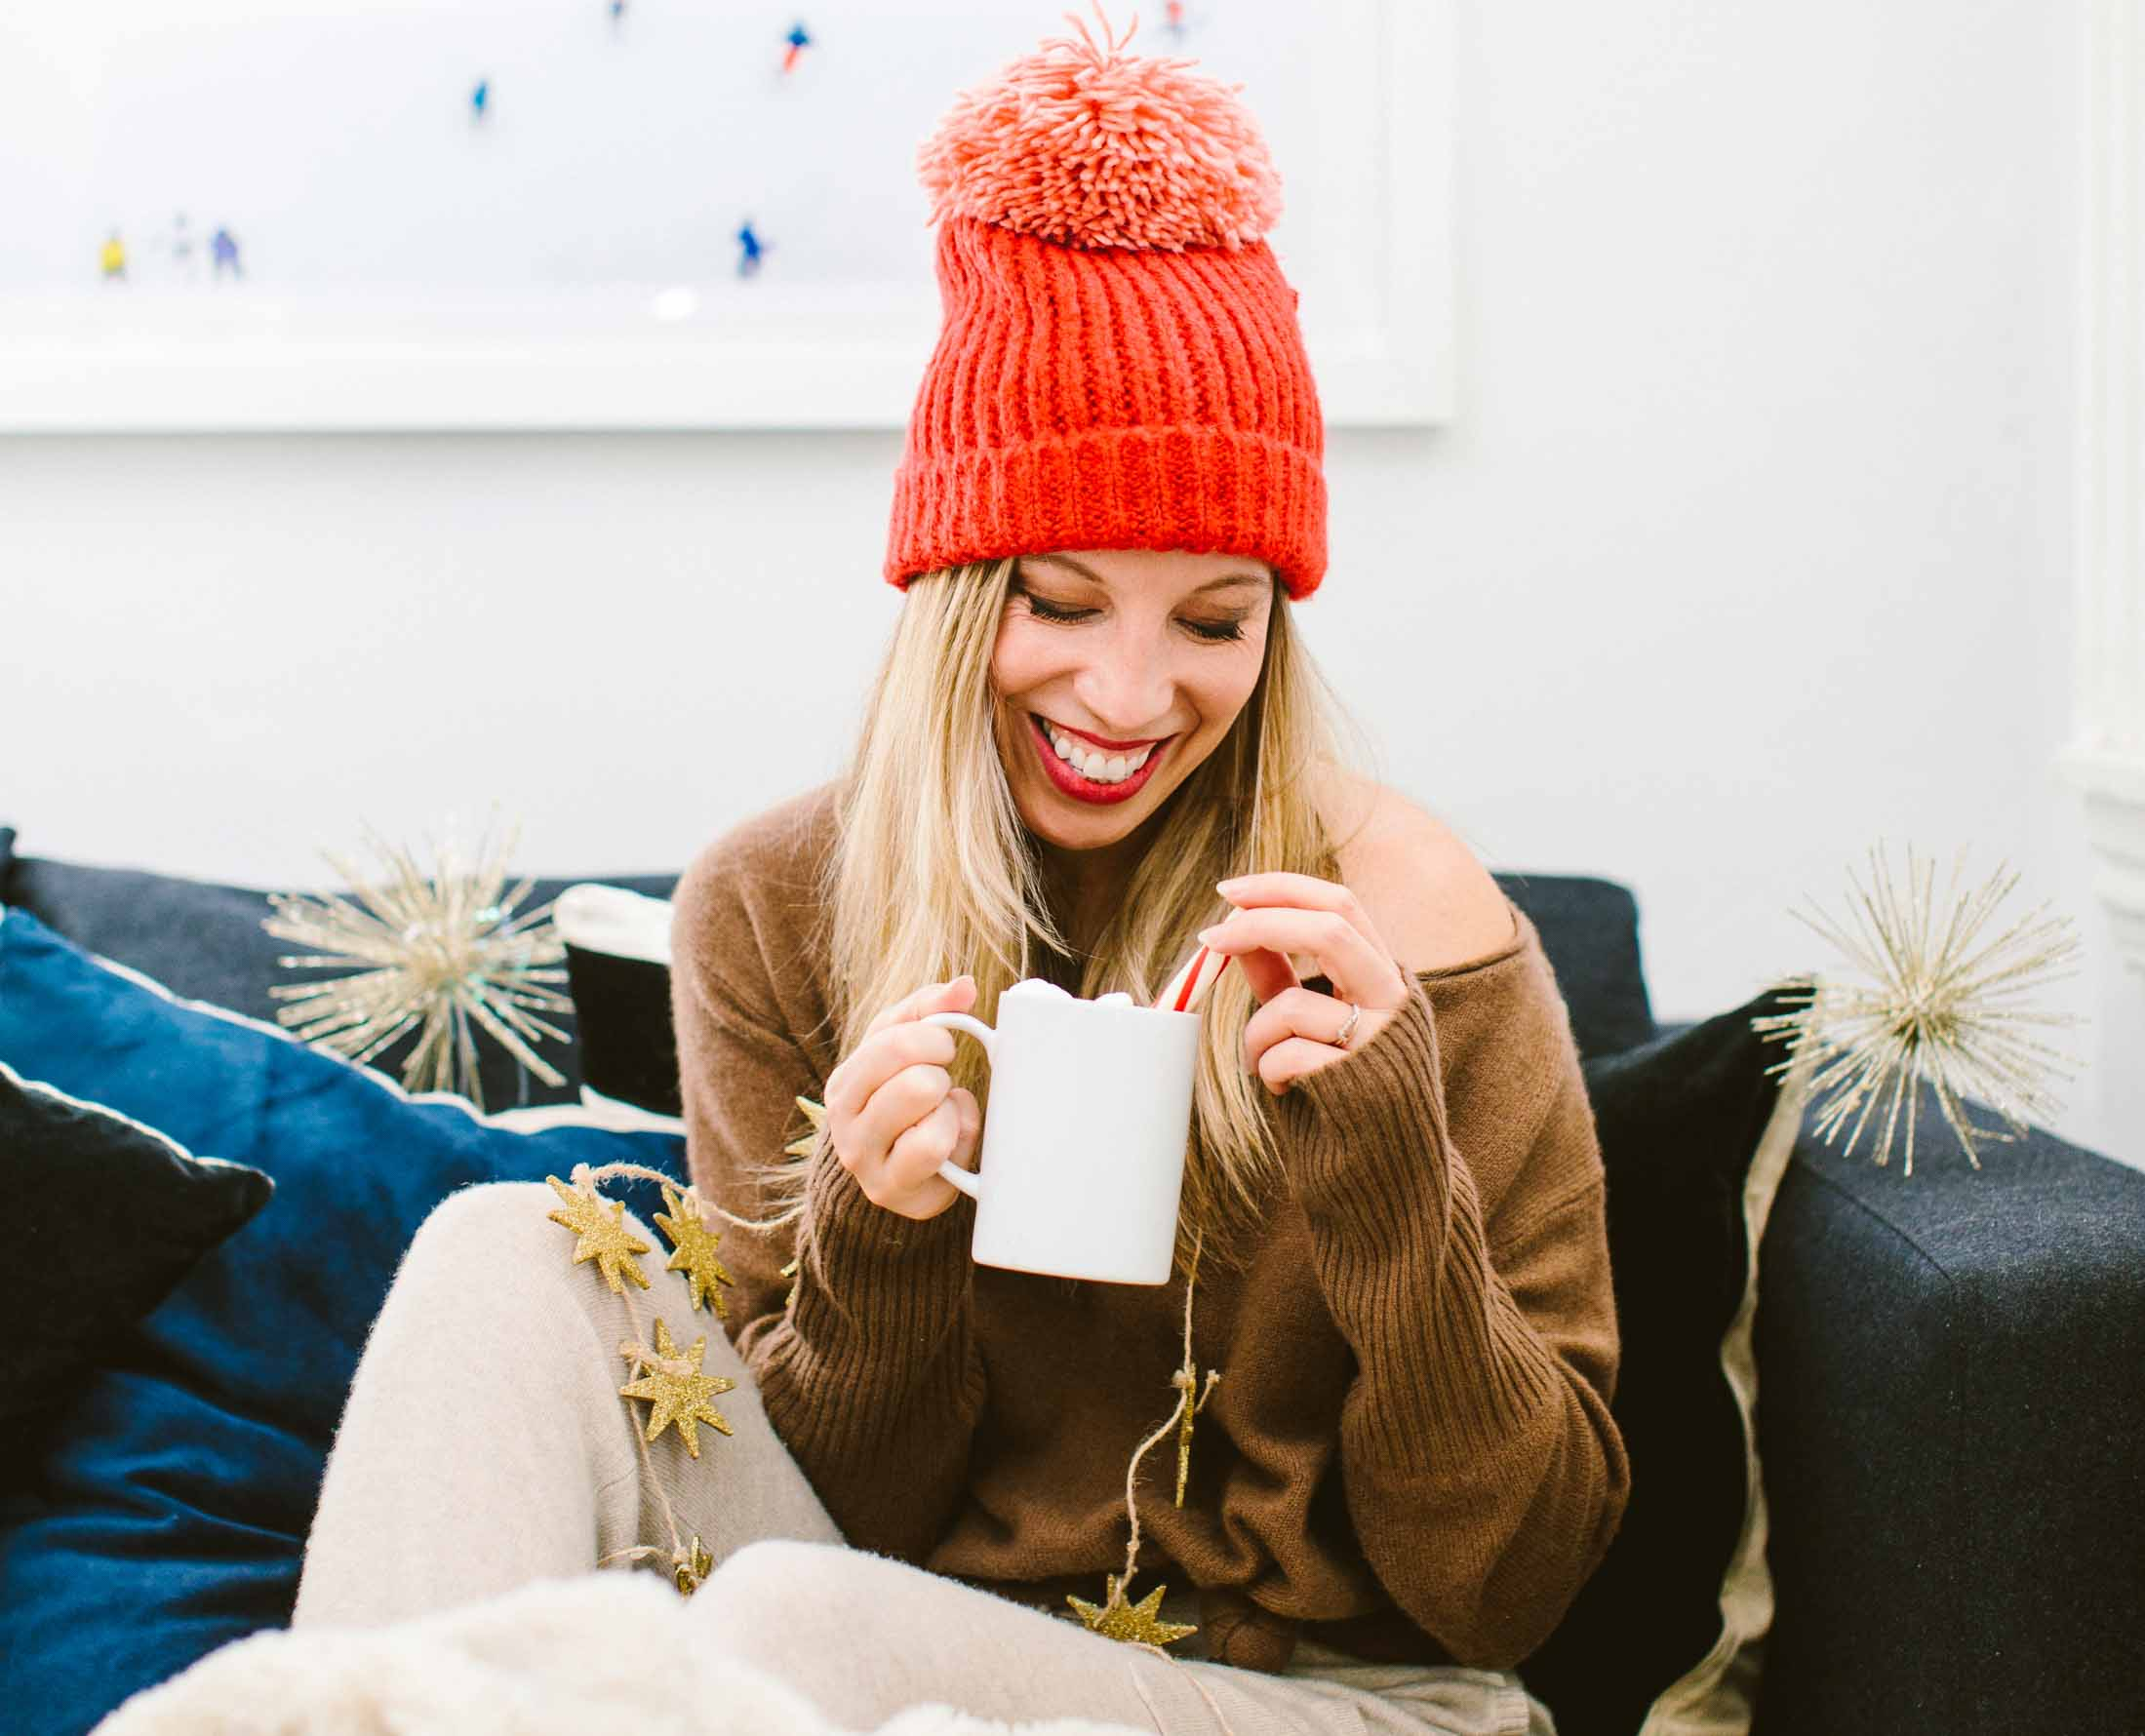 Welcome to Holiday Central! We're shopping presents, outfit inspo, Black Friday sales & anything FESTIVE on offer — even for a #StayAtHome season.